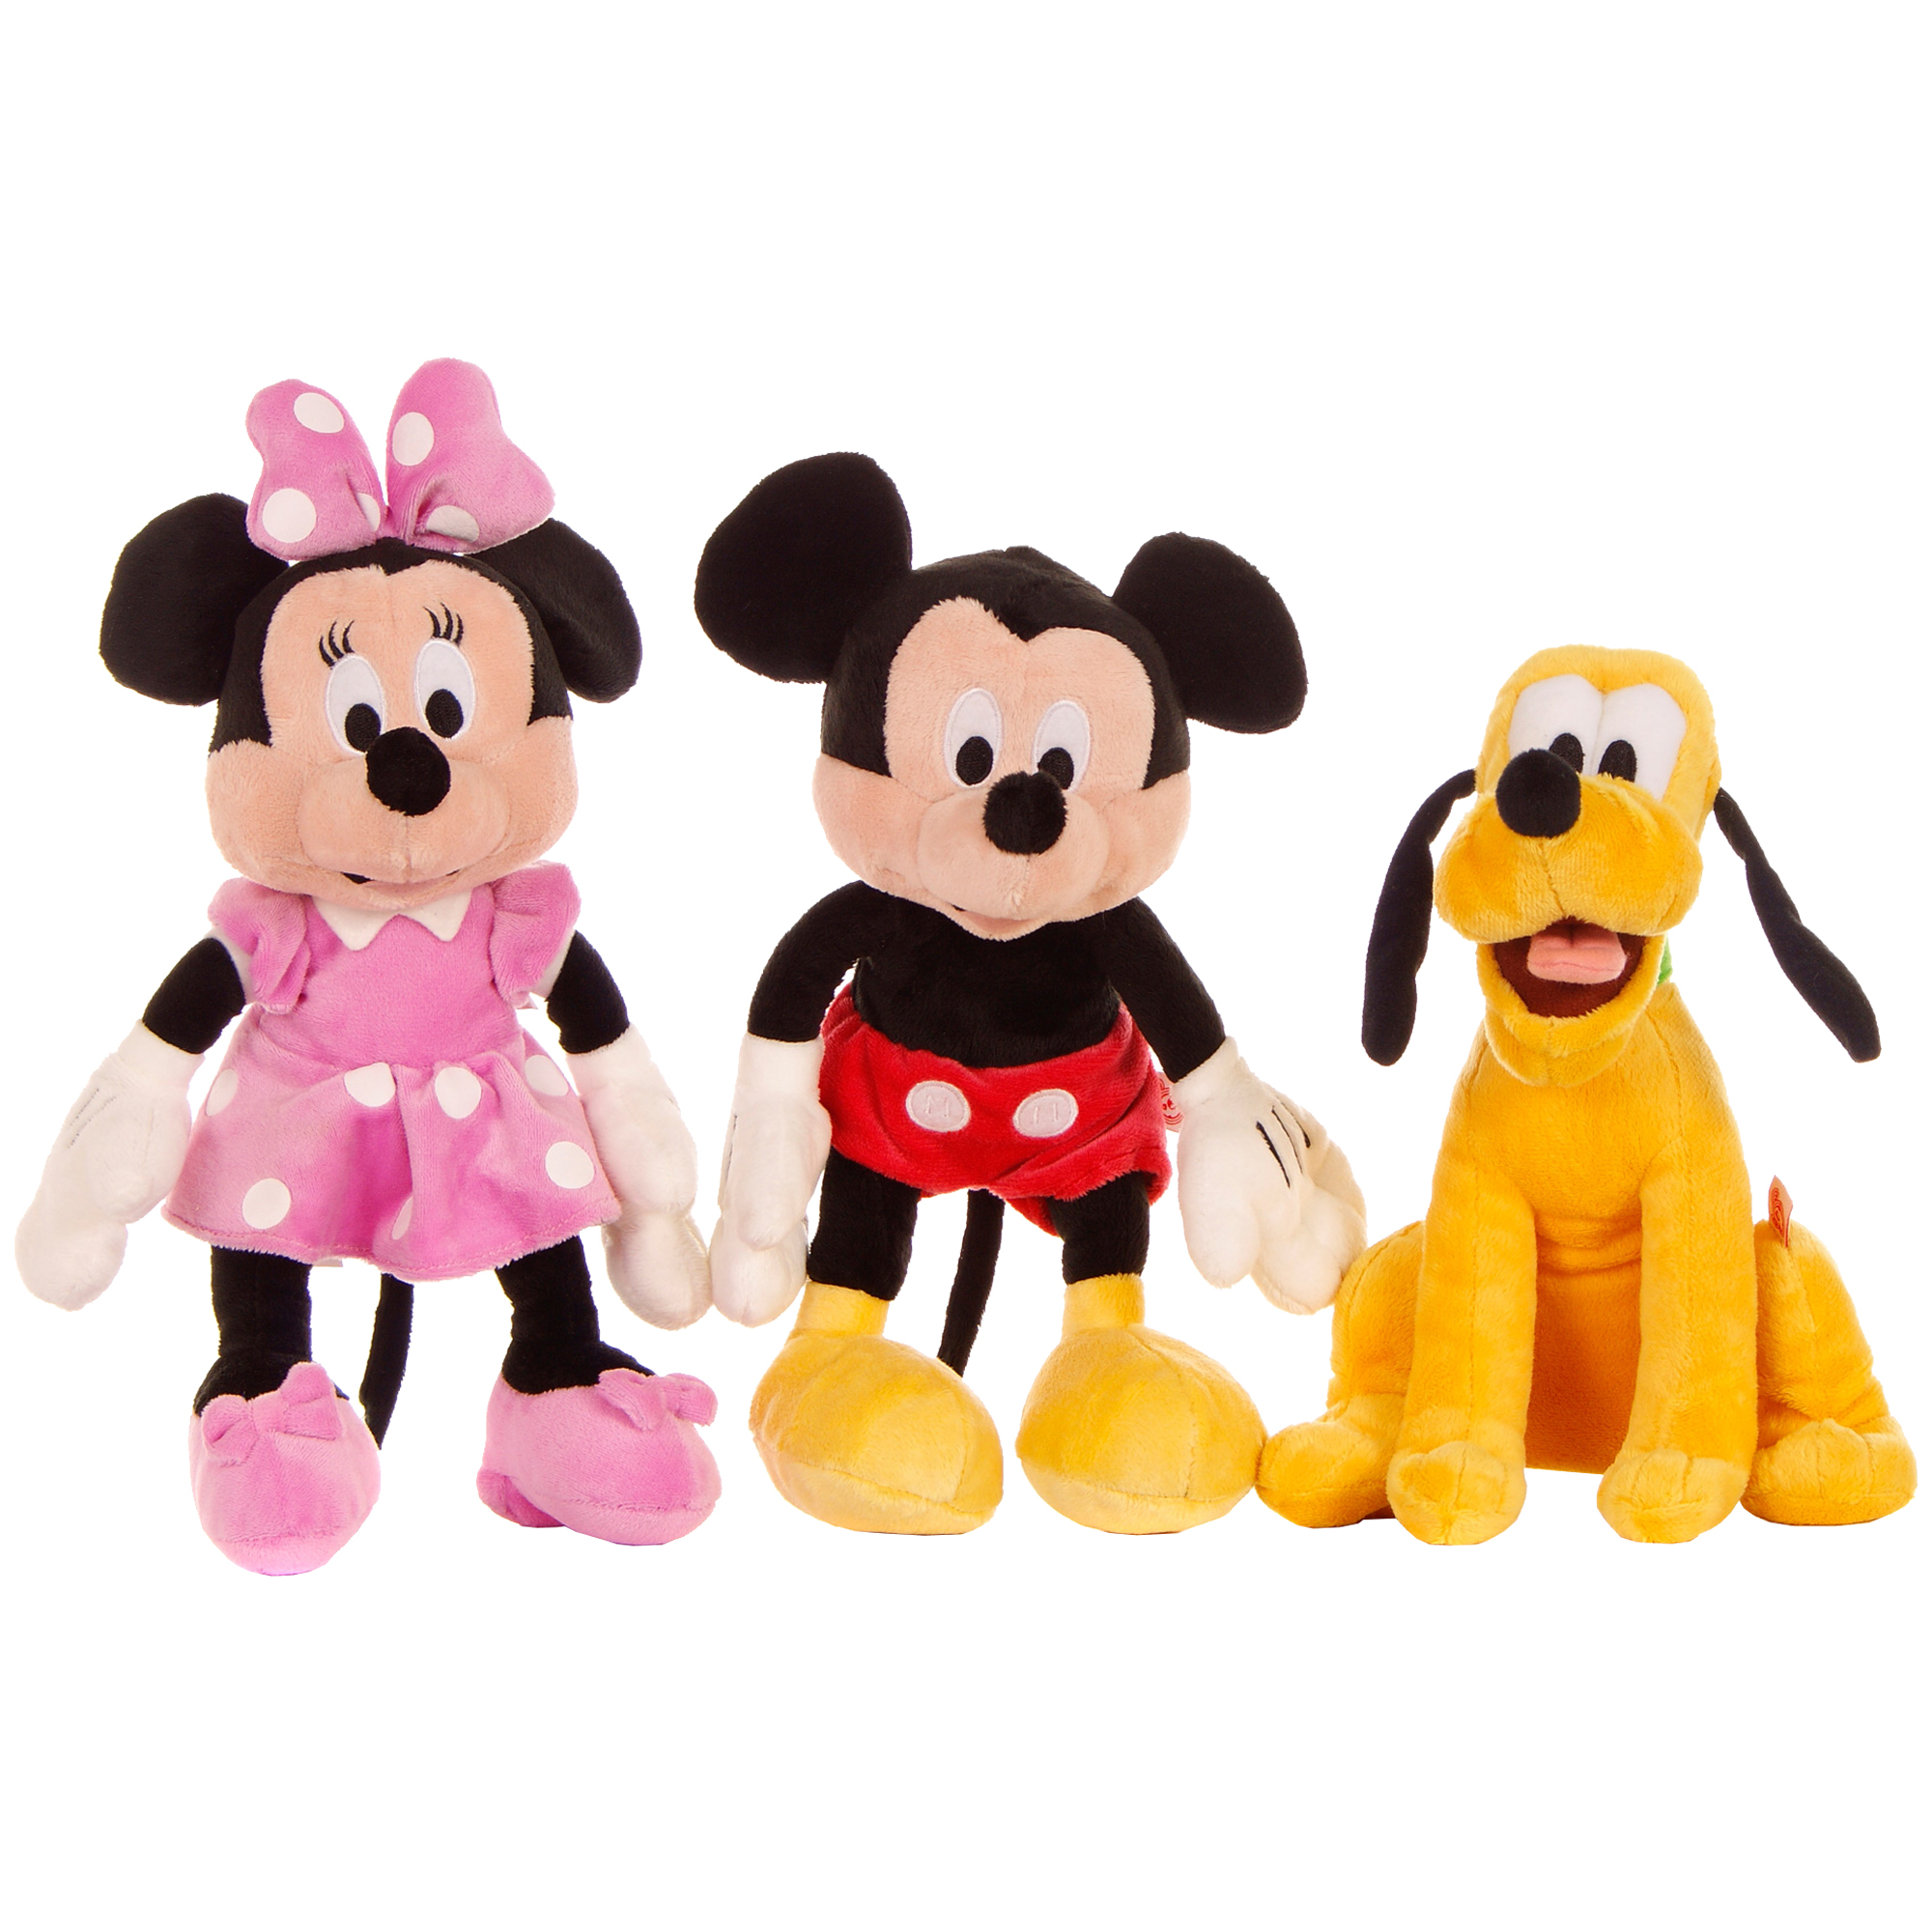 Disney Mickey Mouse Club House Soft Toy Assortment 1